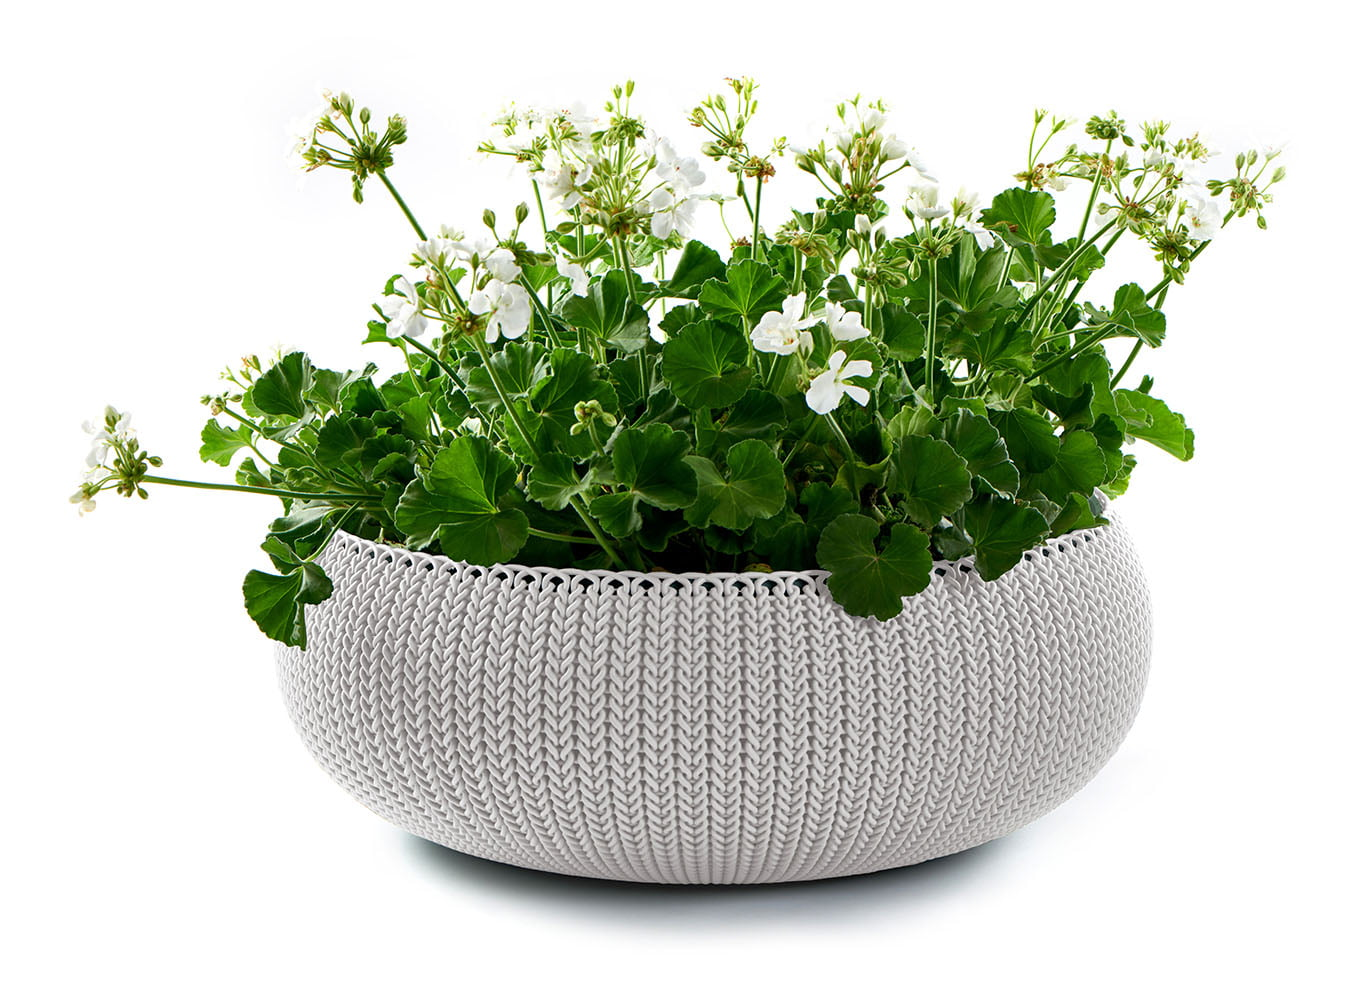 Keter Knit Cozie 21.3 in. dia. Large Resin Planter, Oasis White by Keter